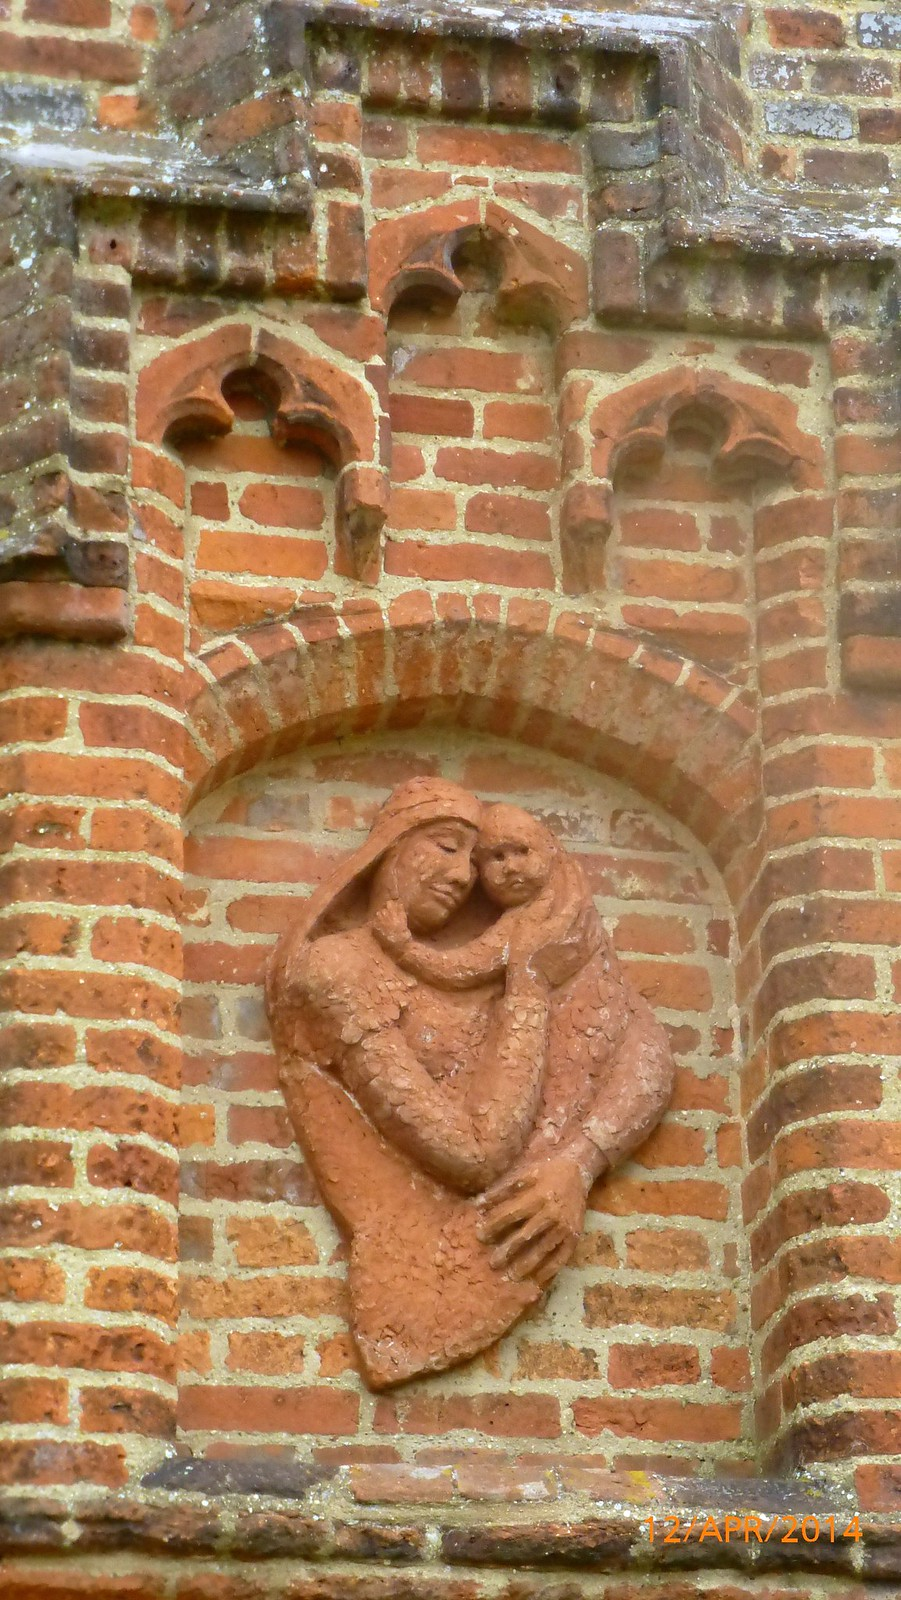 Terracotta Bas-relief at All Saints Church, Feering SWC Walk 216 Kelvedon Circular